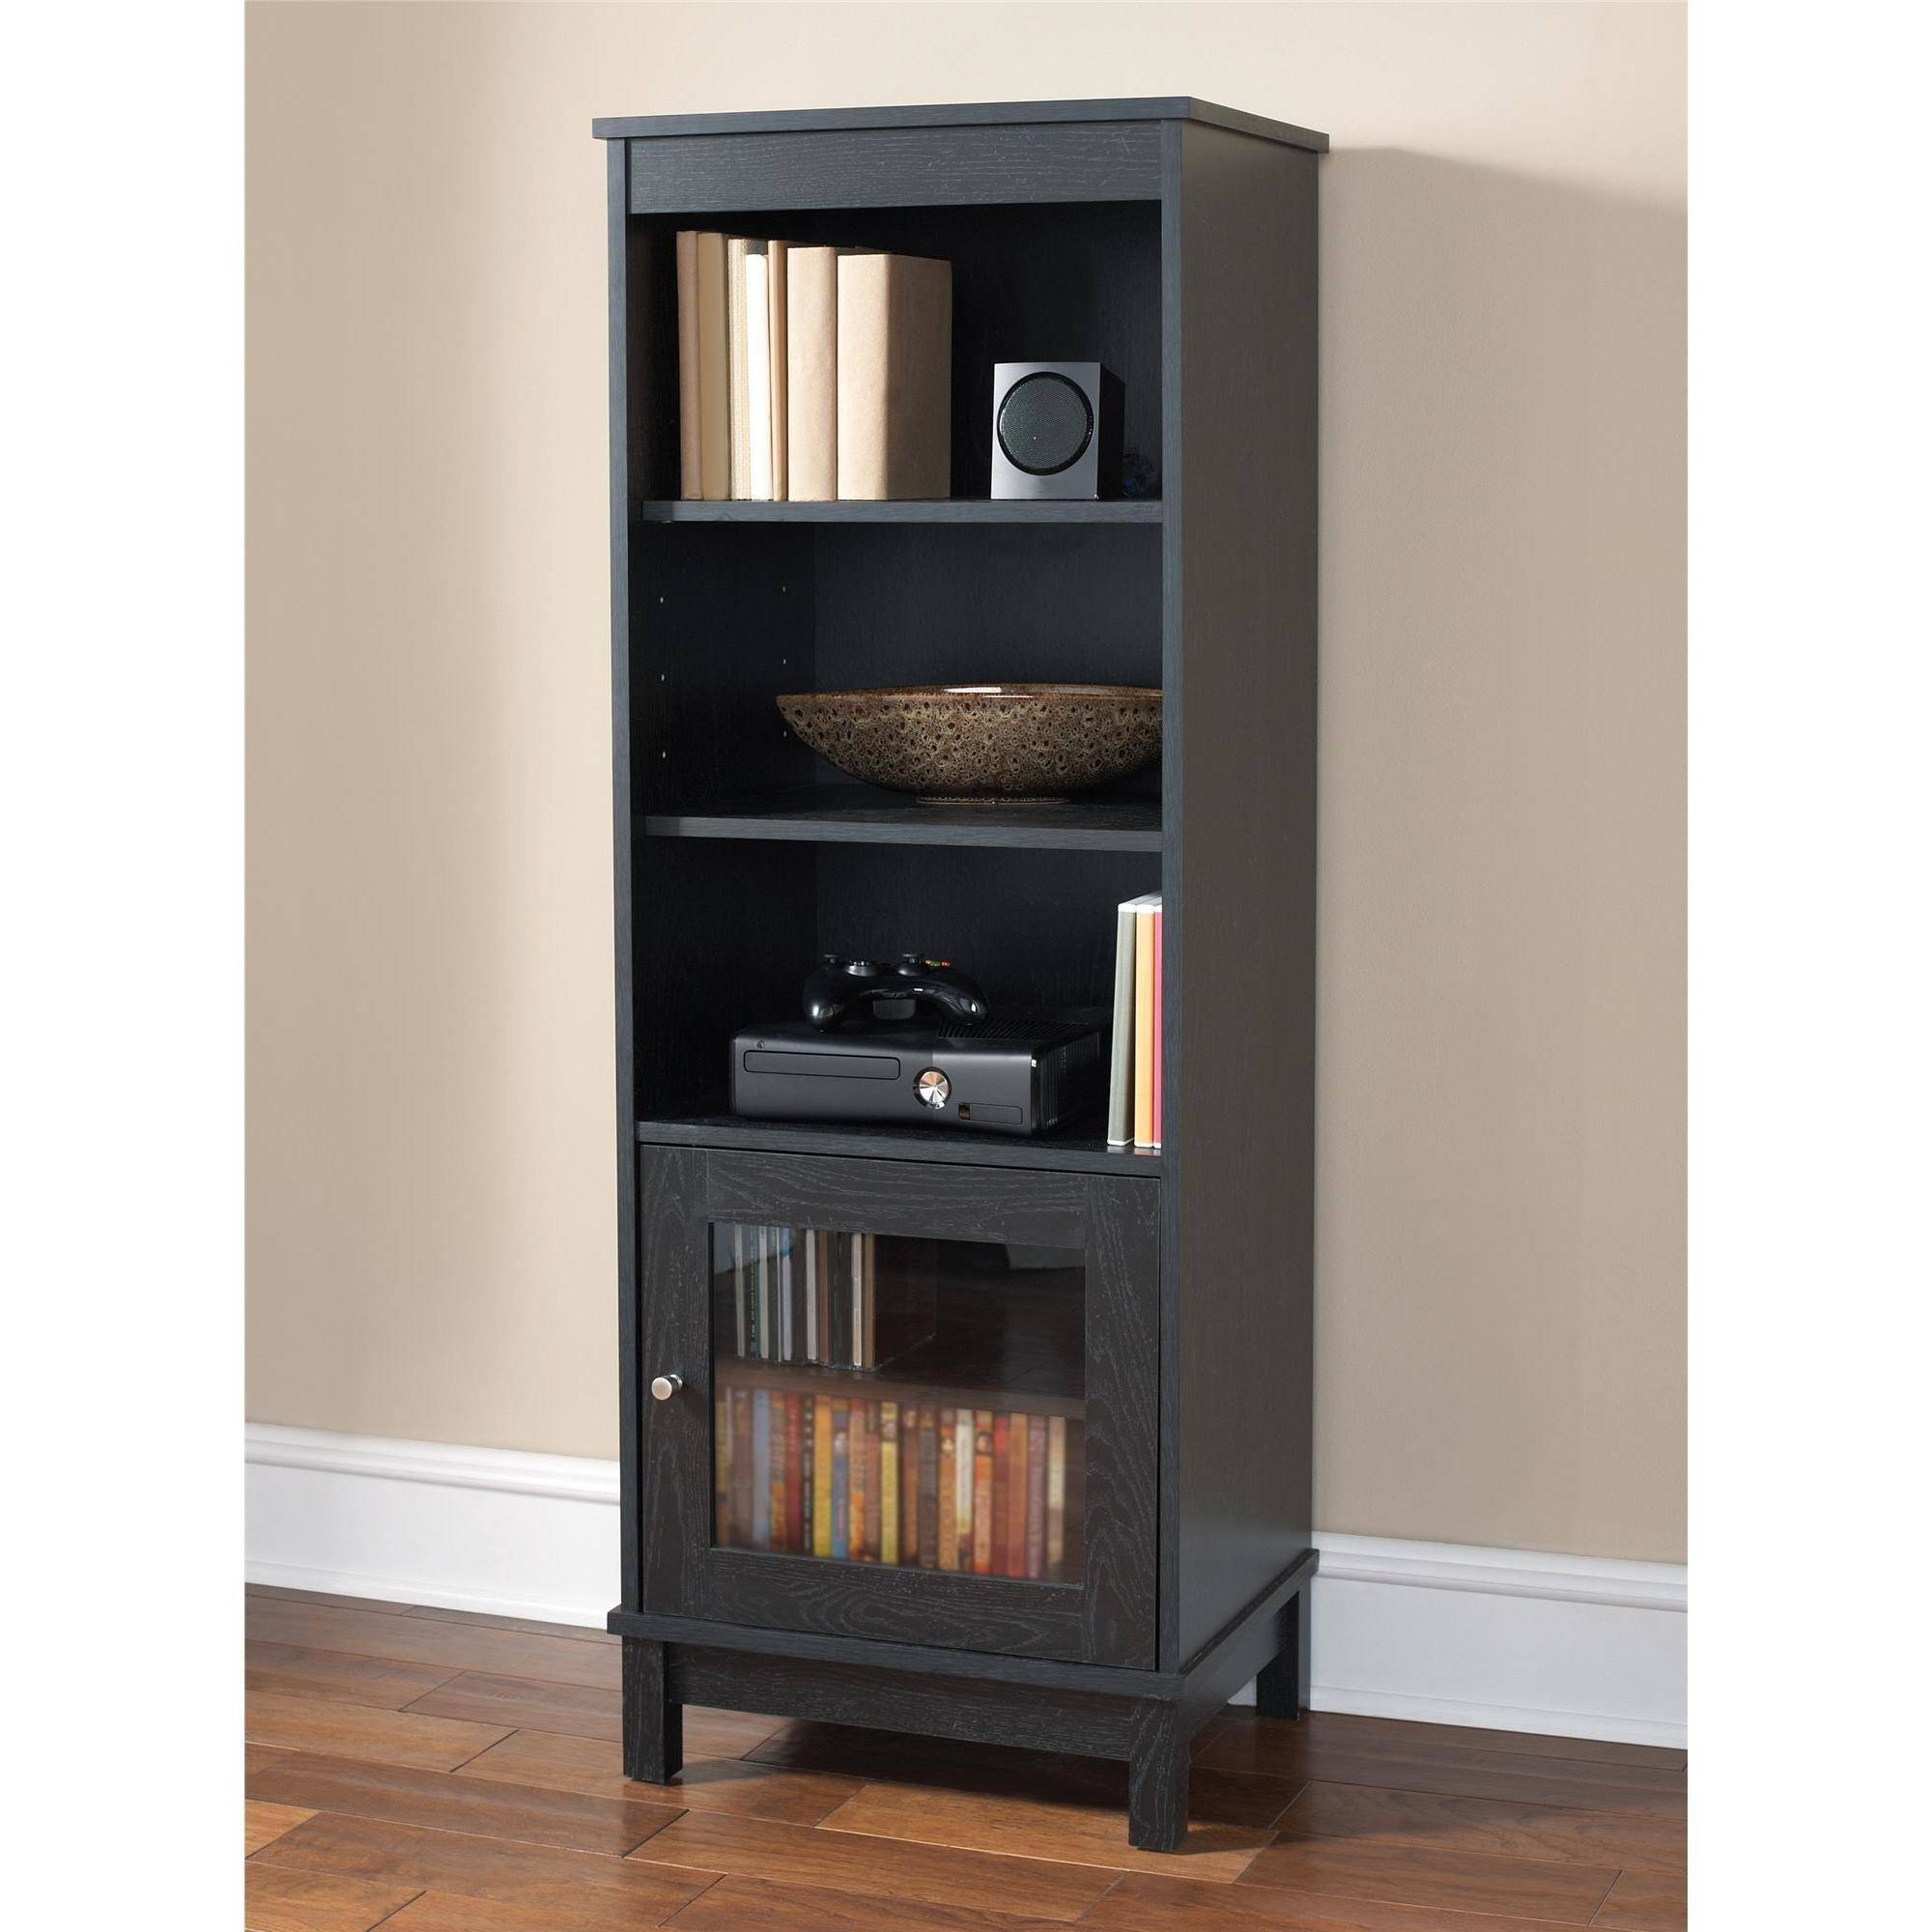 Mainstays Media Storage Bookcase, Multiple Finishes